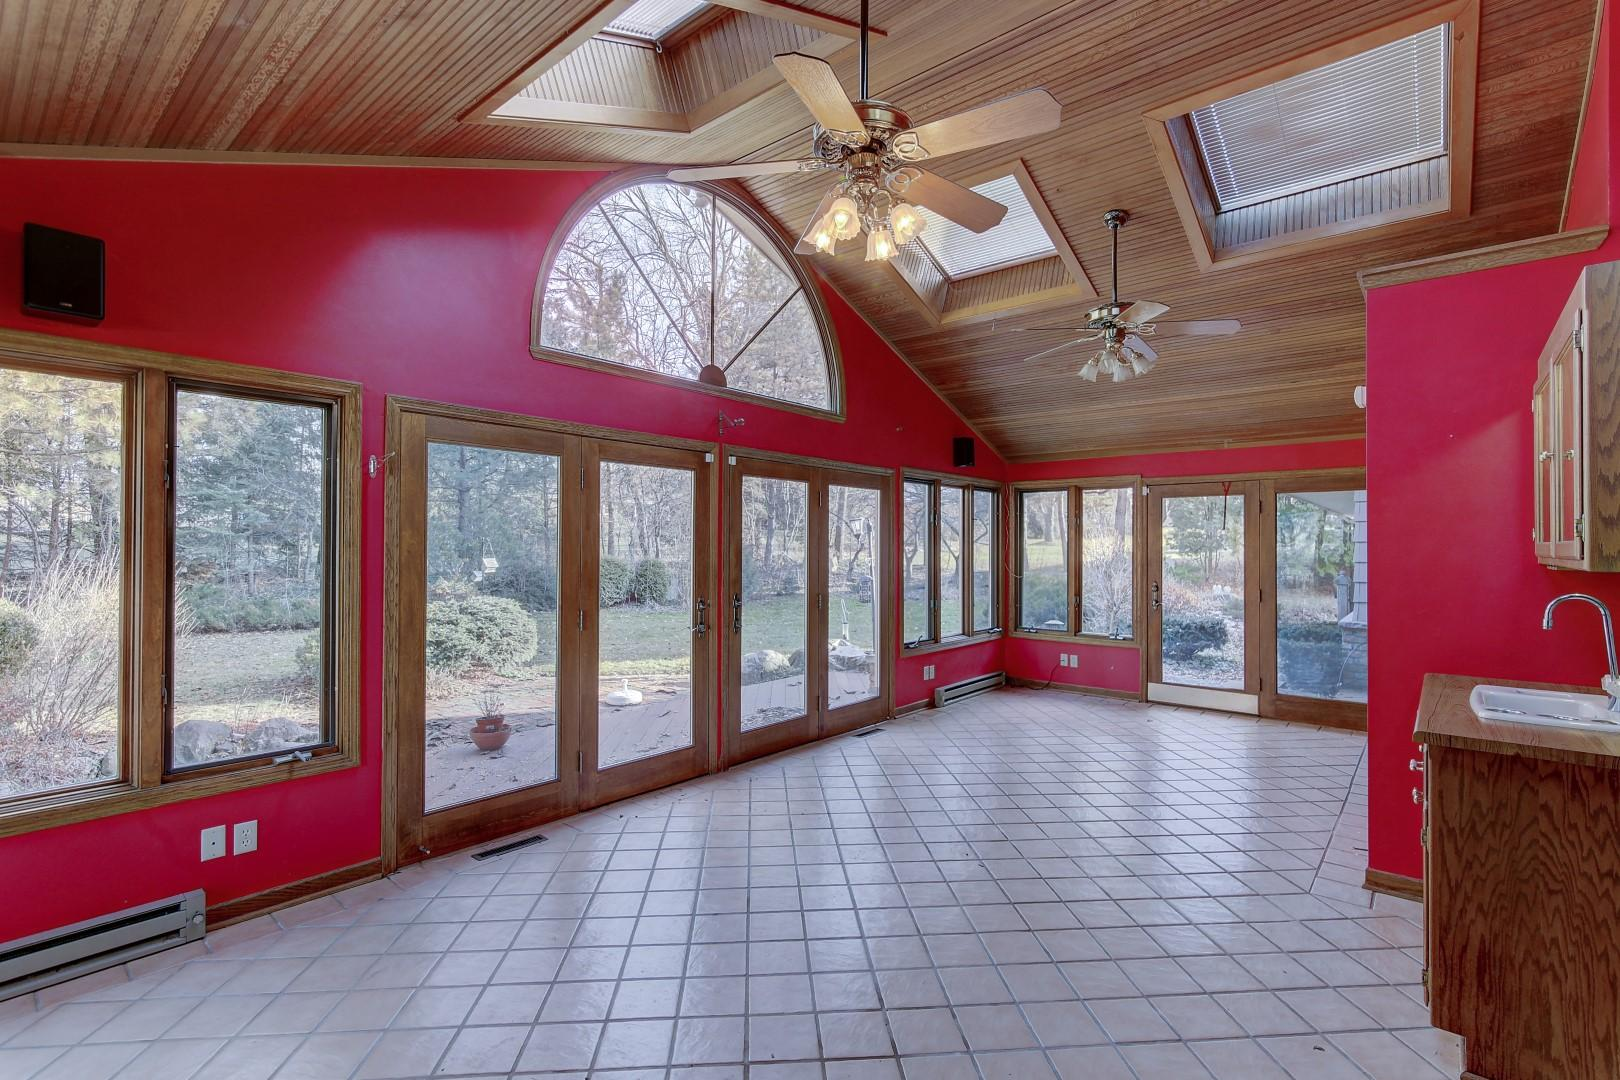 2420 Whippletree Ln, Brookfield, Wisconsin 53045, 4 Bedrooms Bedrooms, ,3 BathroomsBathrooms,Single-Family,For Sale,Whippletree Ln,1622842